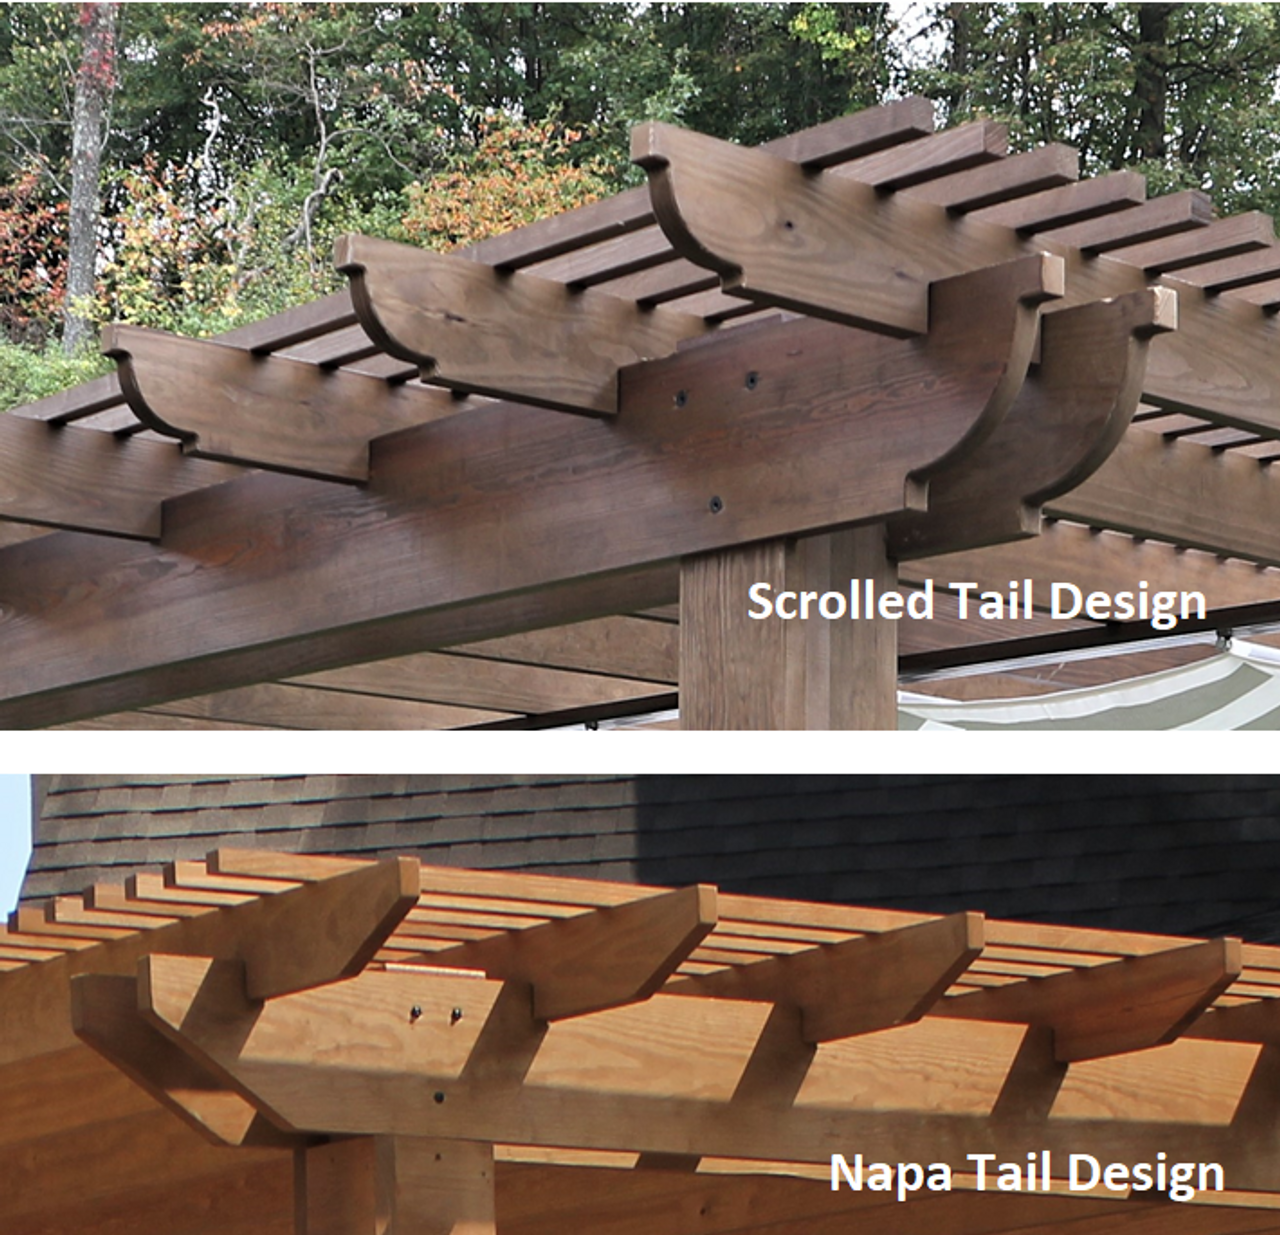 Rafter tail design - Scrolled and Mitred